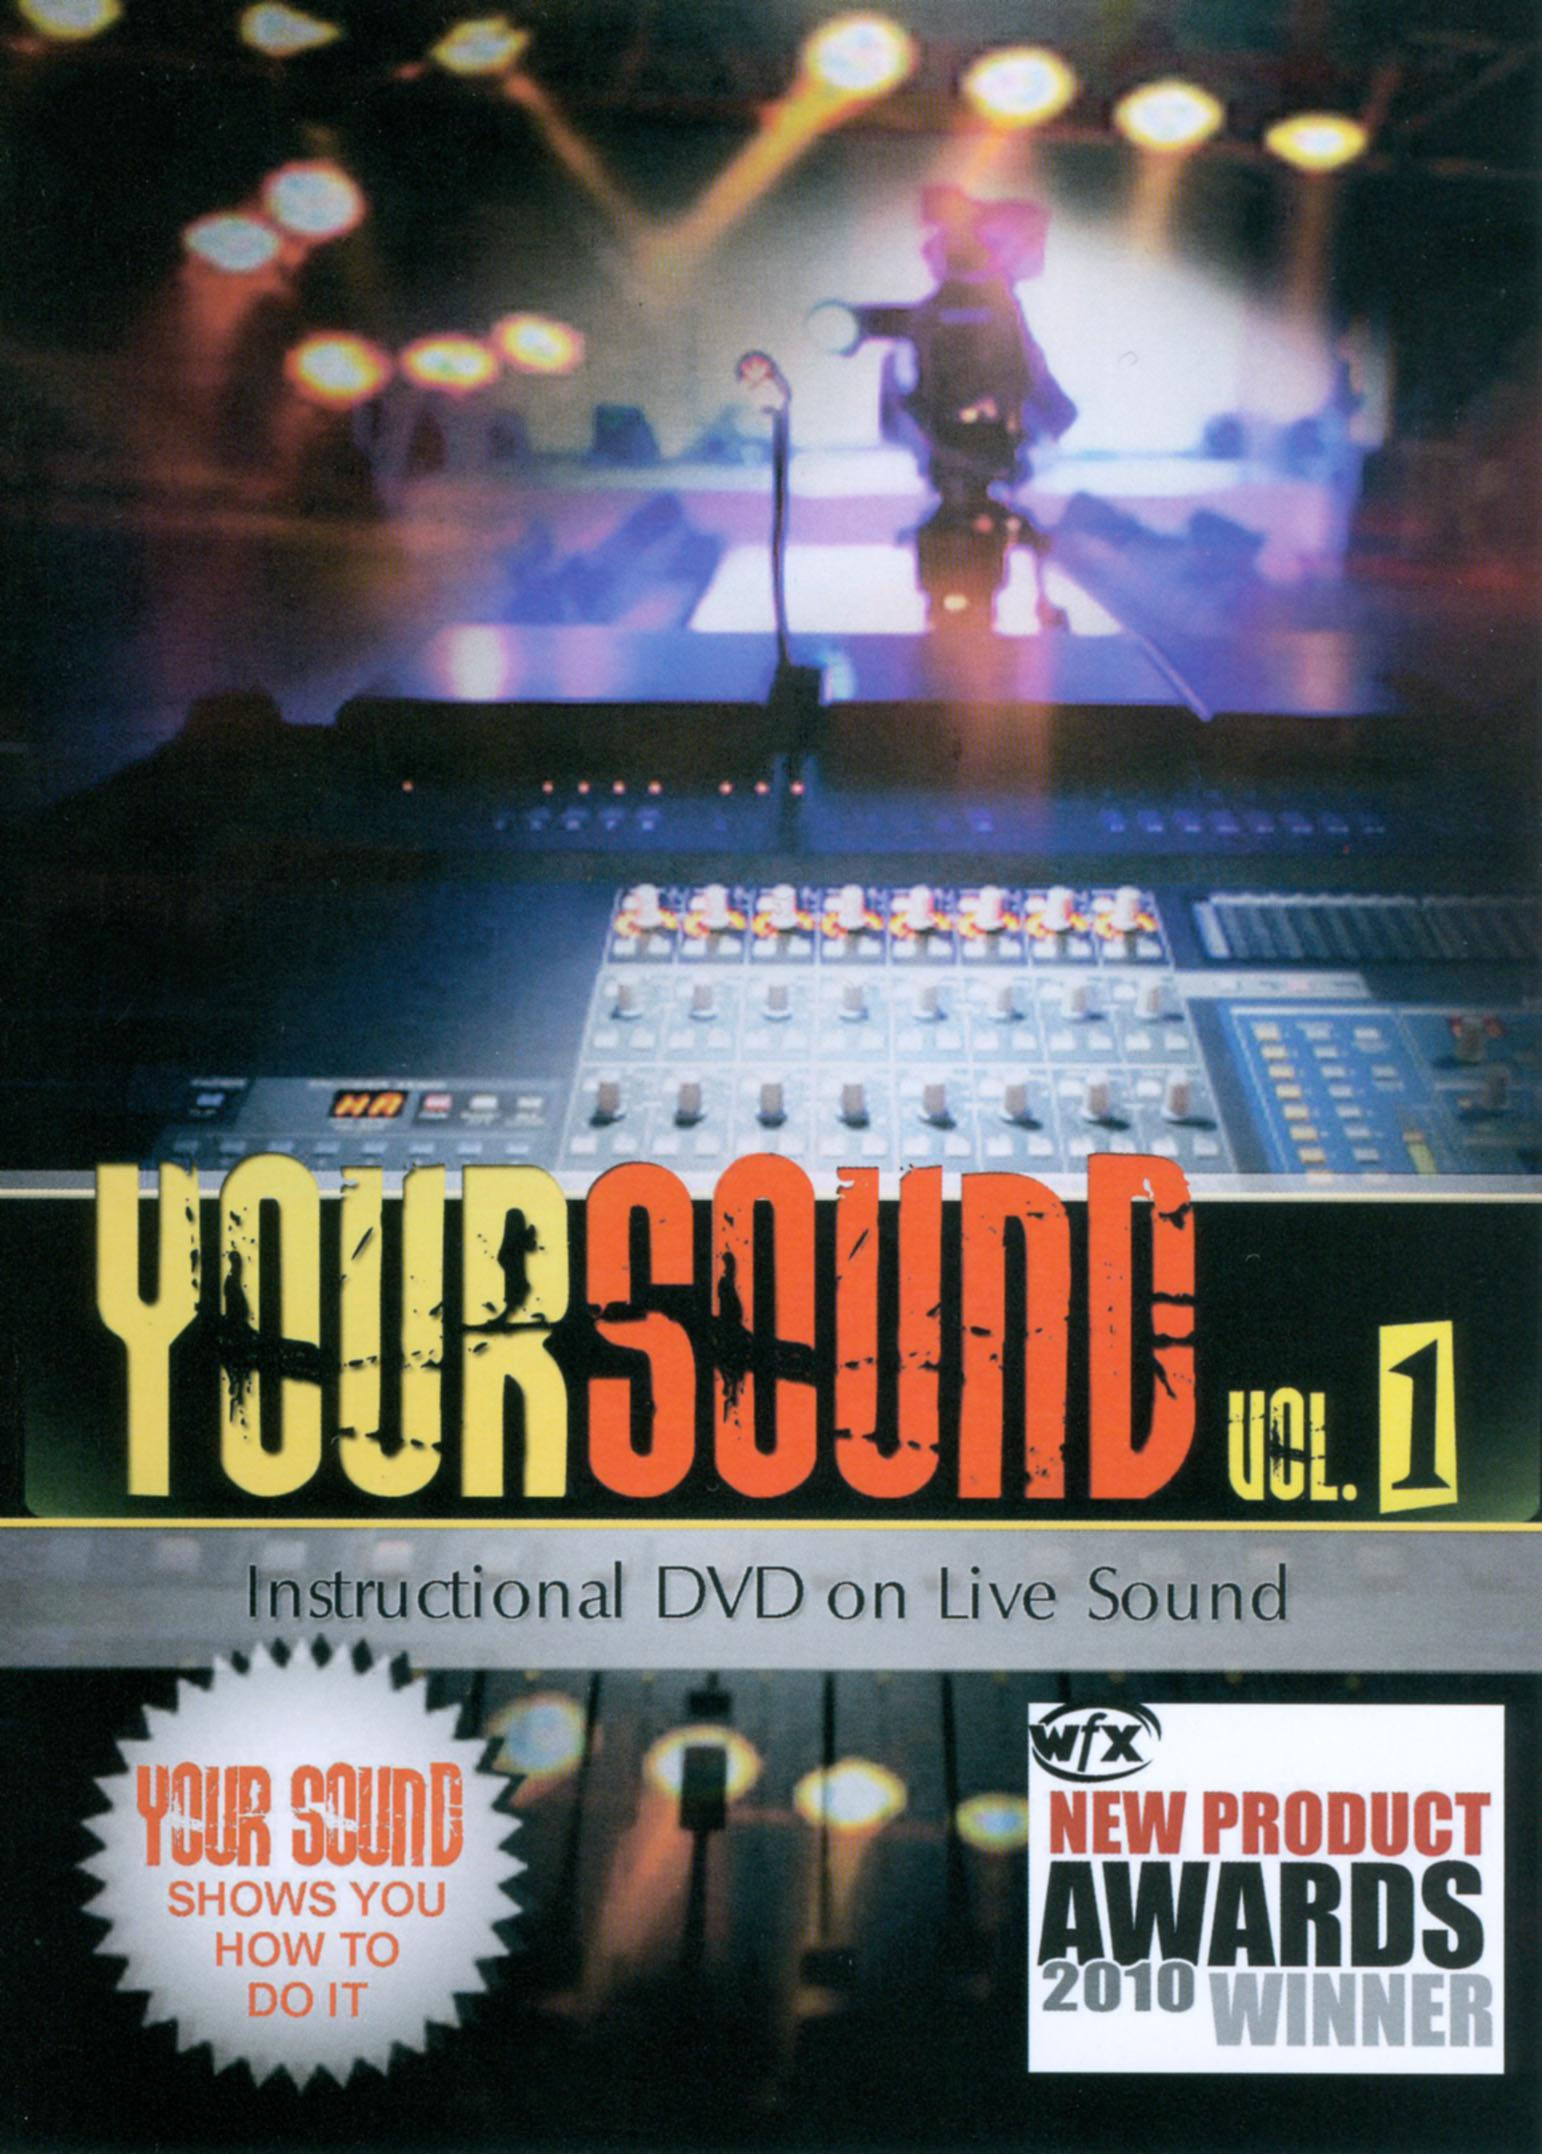 Your Sound, Vol. 1: Instructional DVD on Live Sound